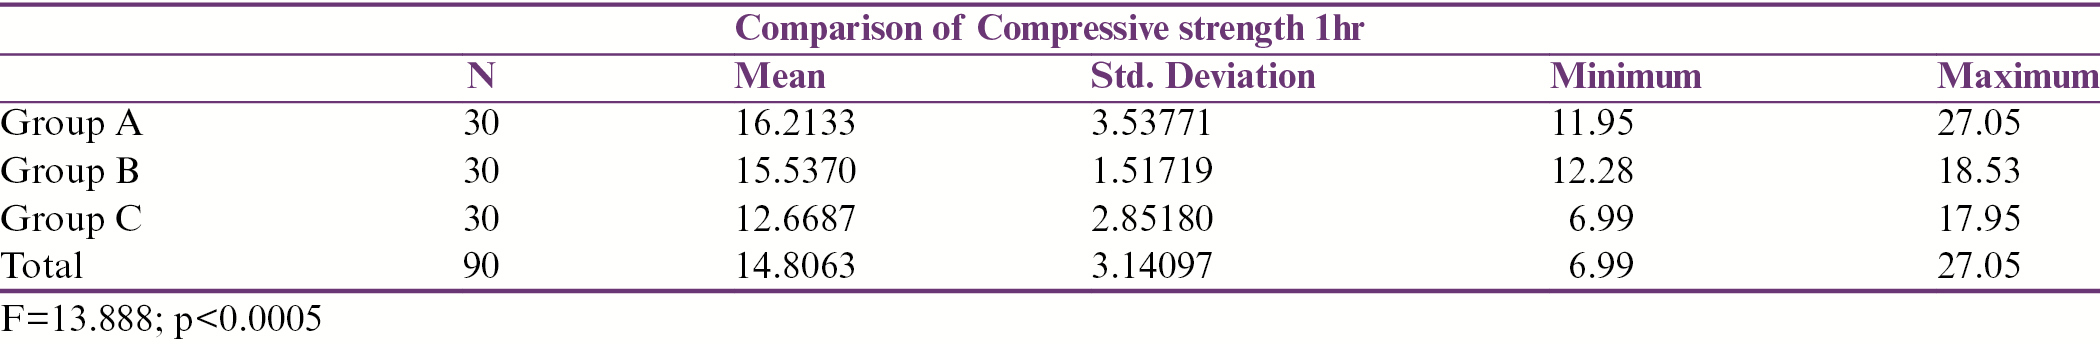 Table 1: The results Showed the mean compressive strength is higher in Group A (16.2133), followed by Group B (15.5370) and group C (12.6687)